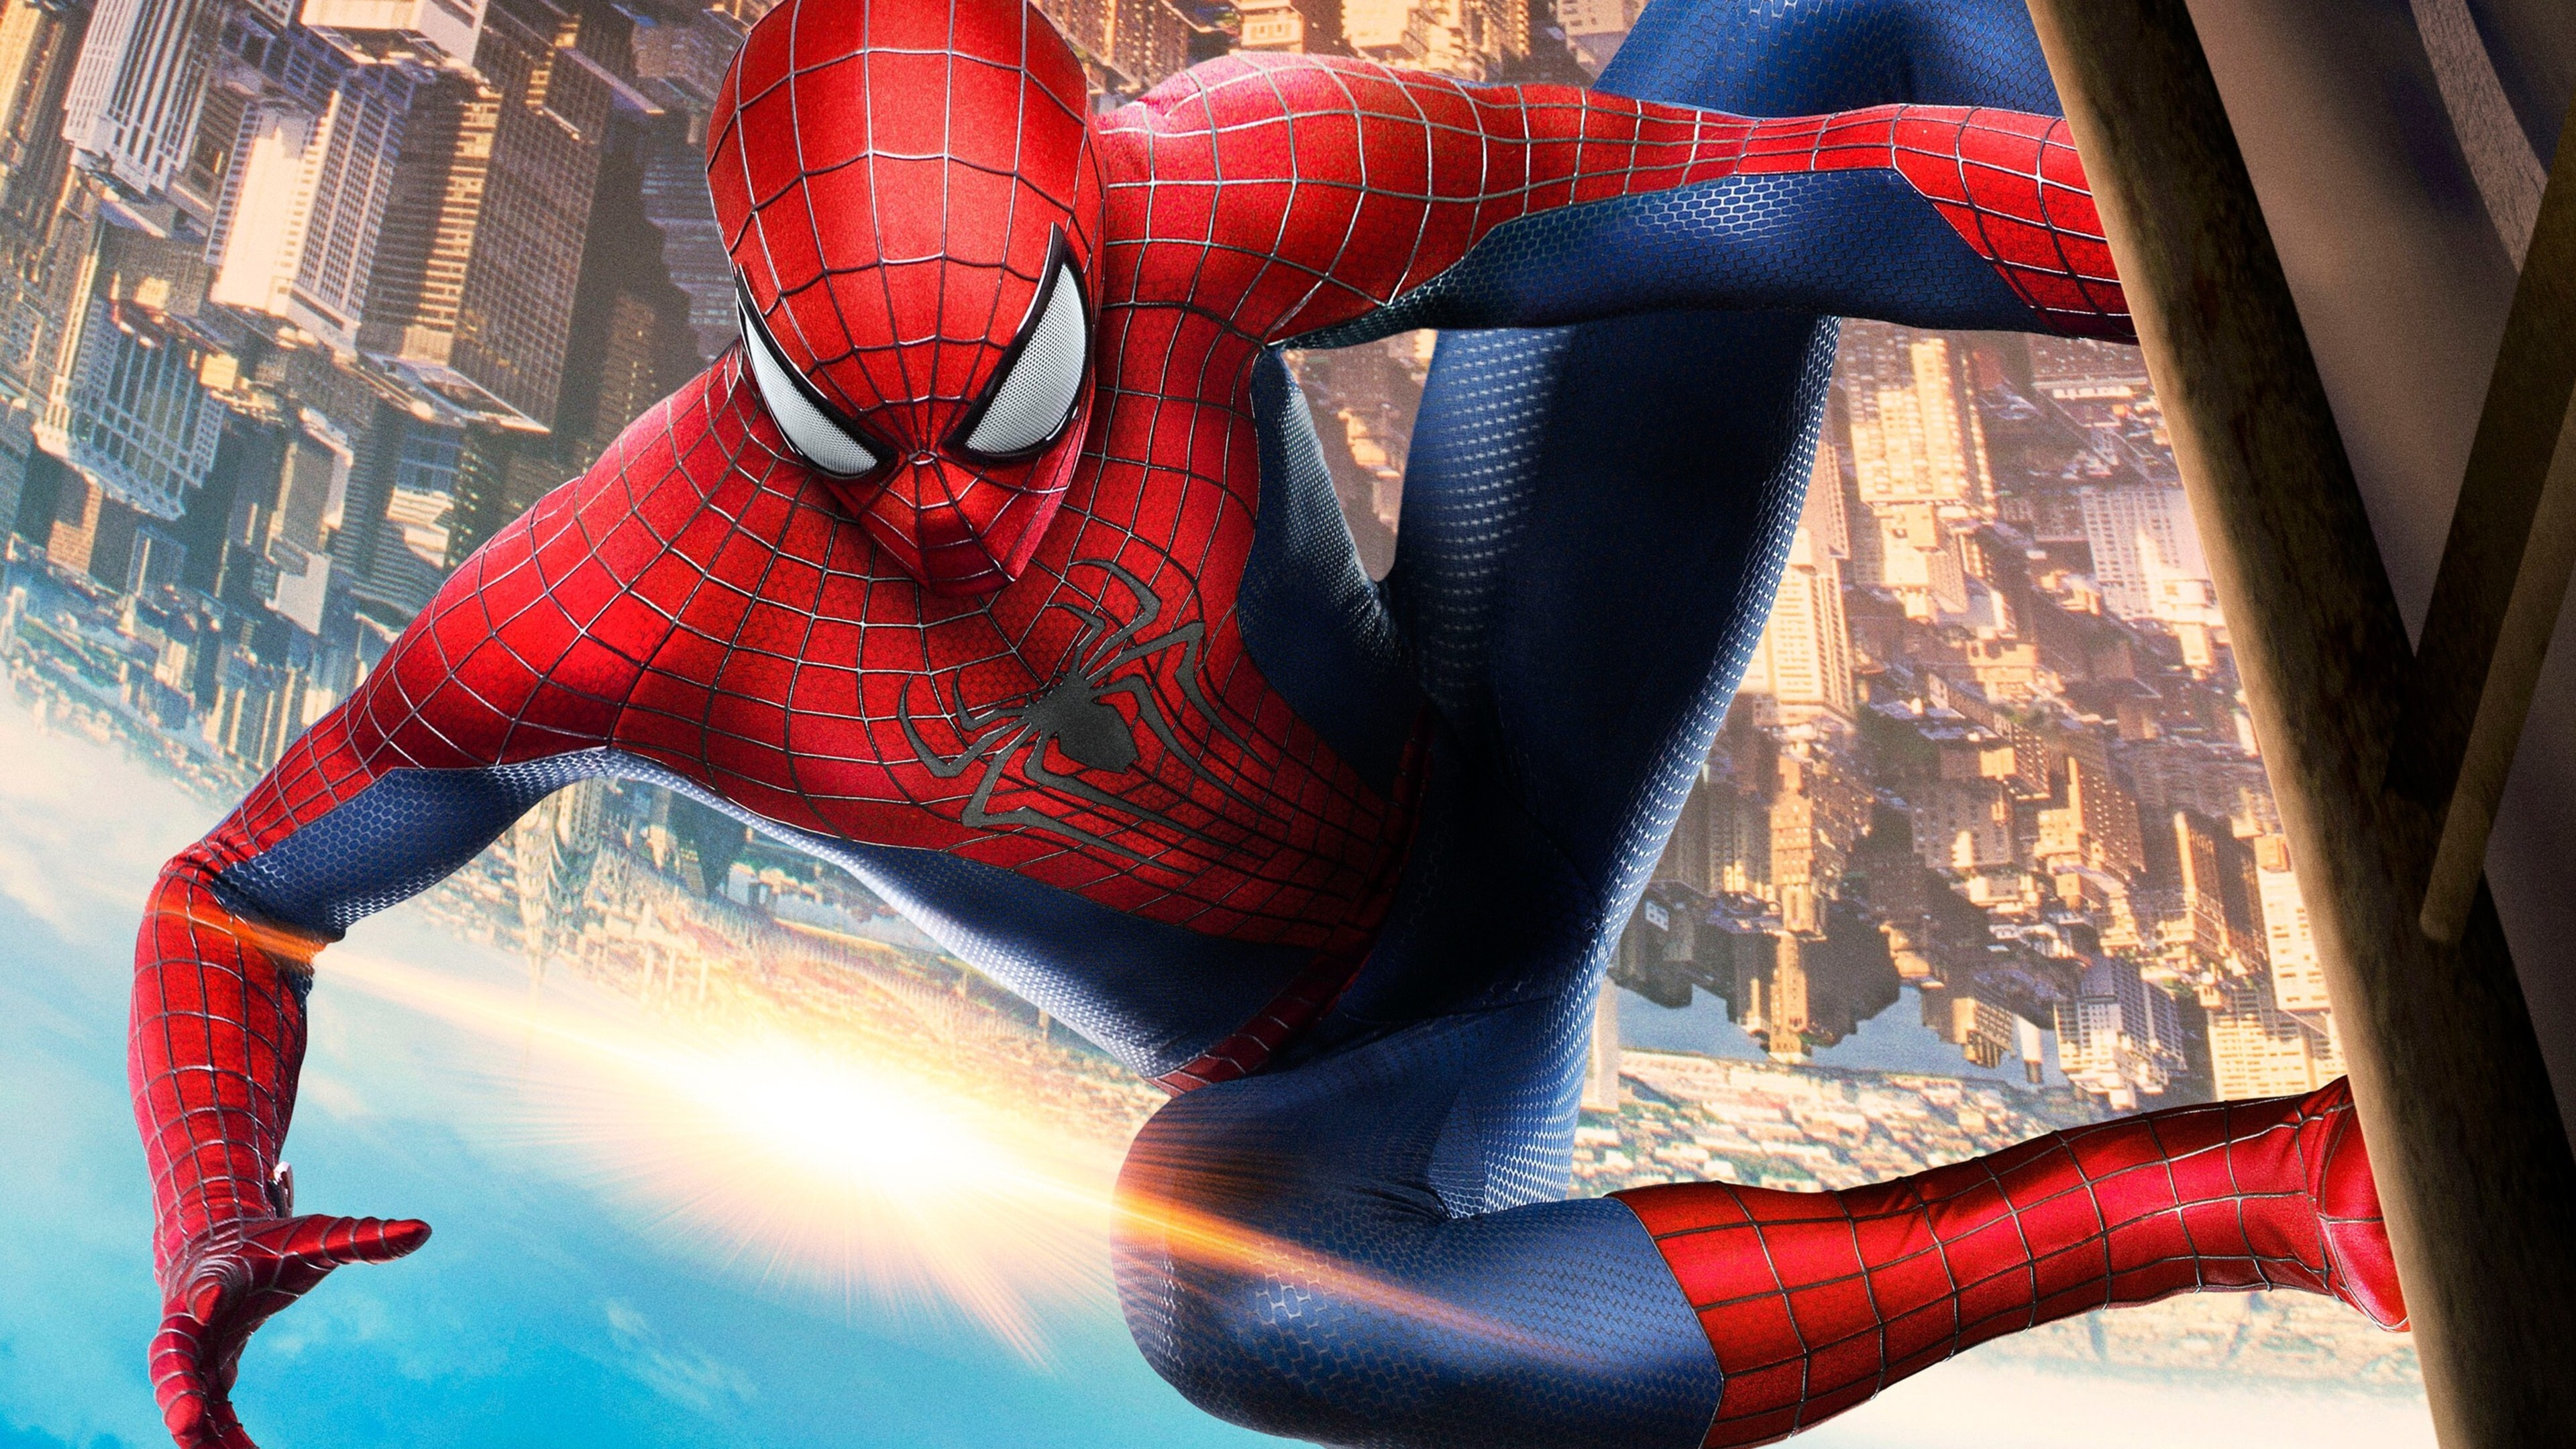 3840x2160 The Amazing Spider Man 2 4k HD 4k Wallpapers ...